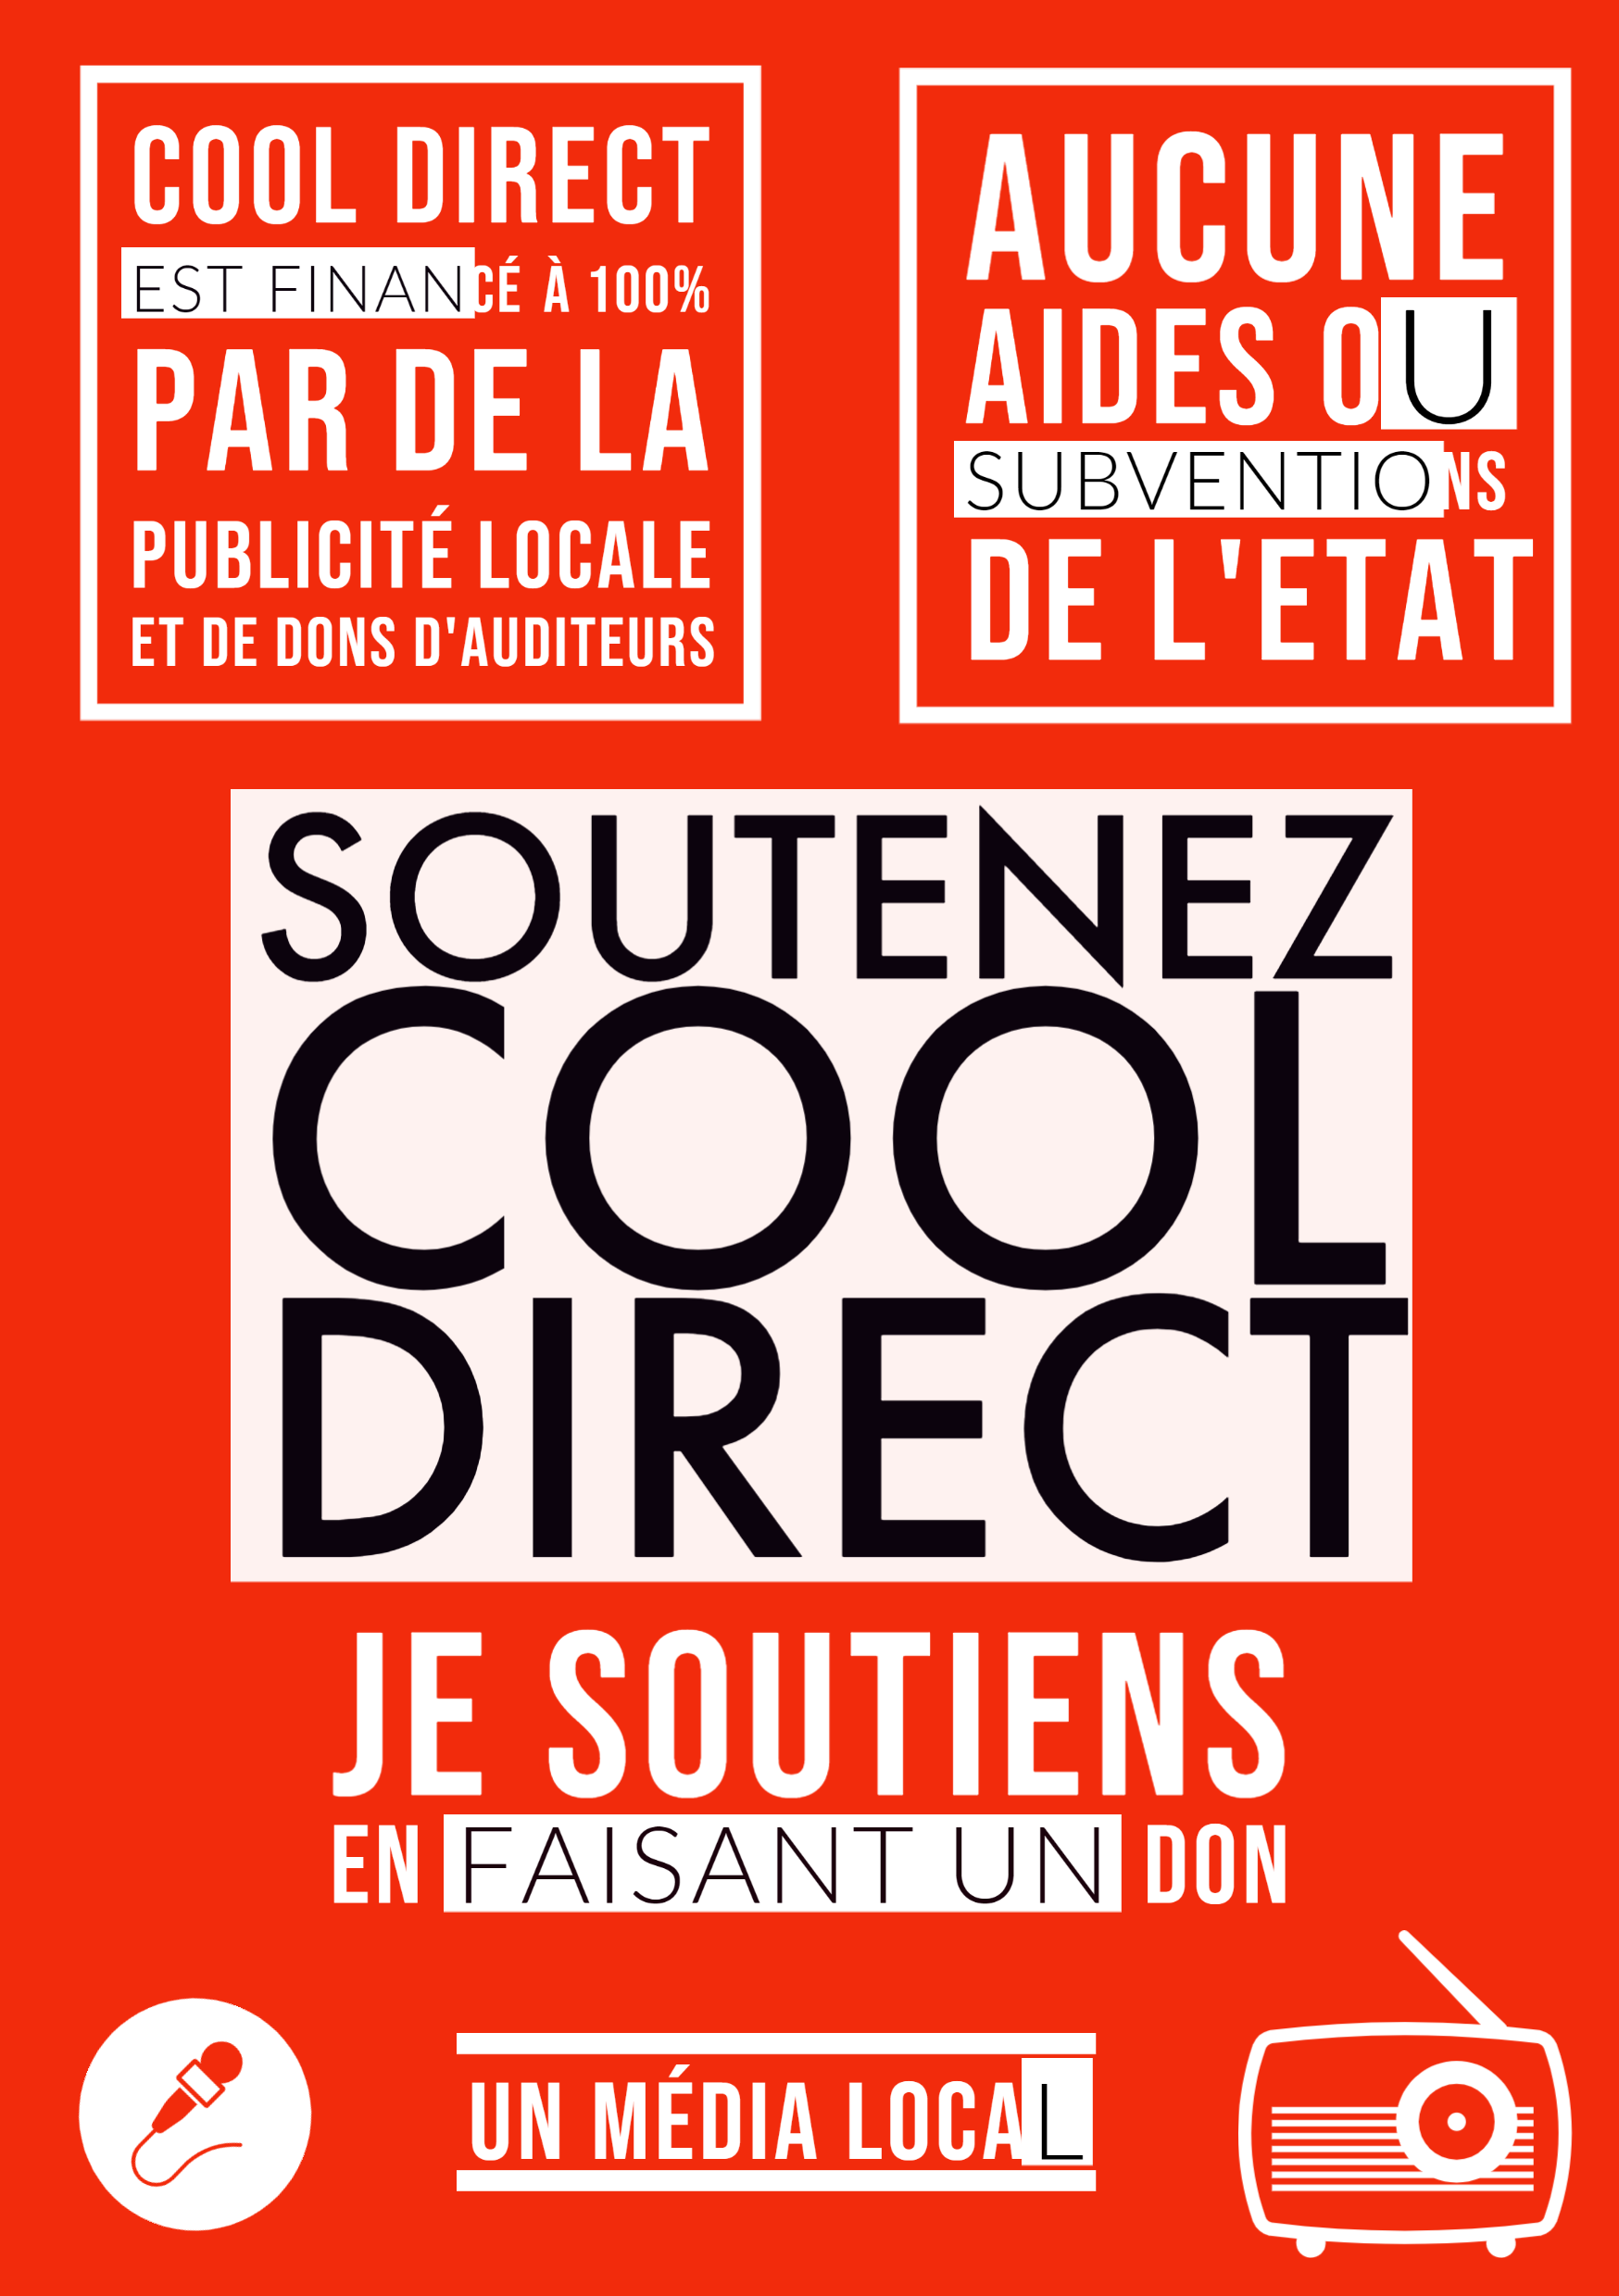 aider cooldirect.png (511 KB)